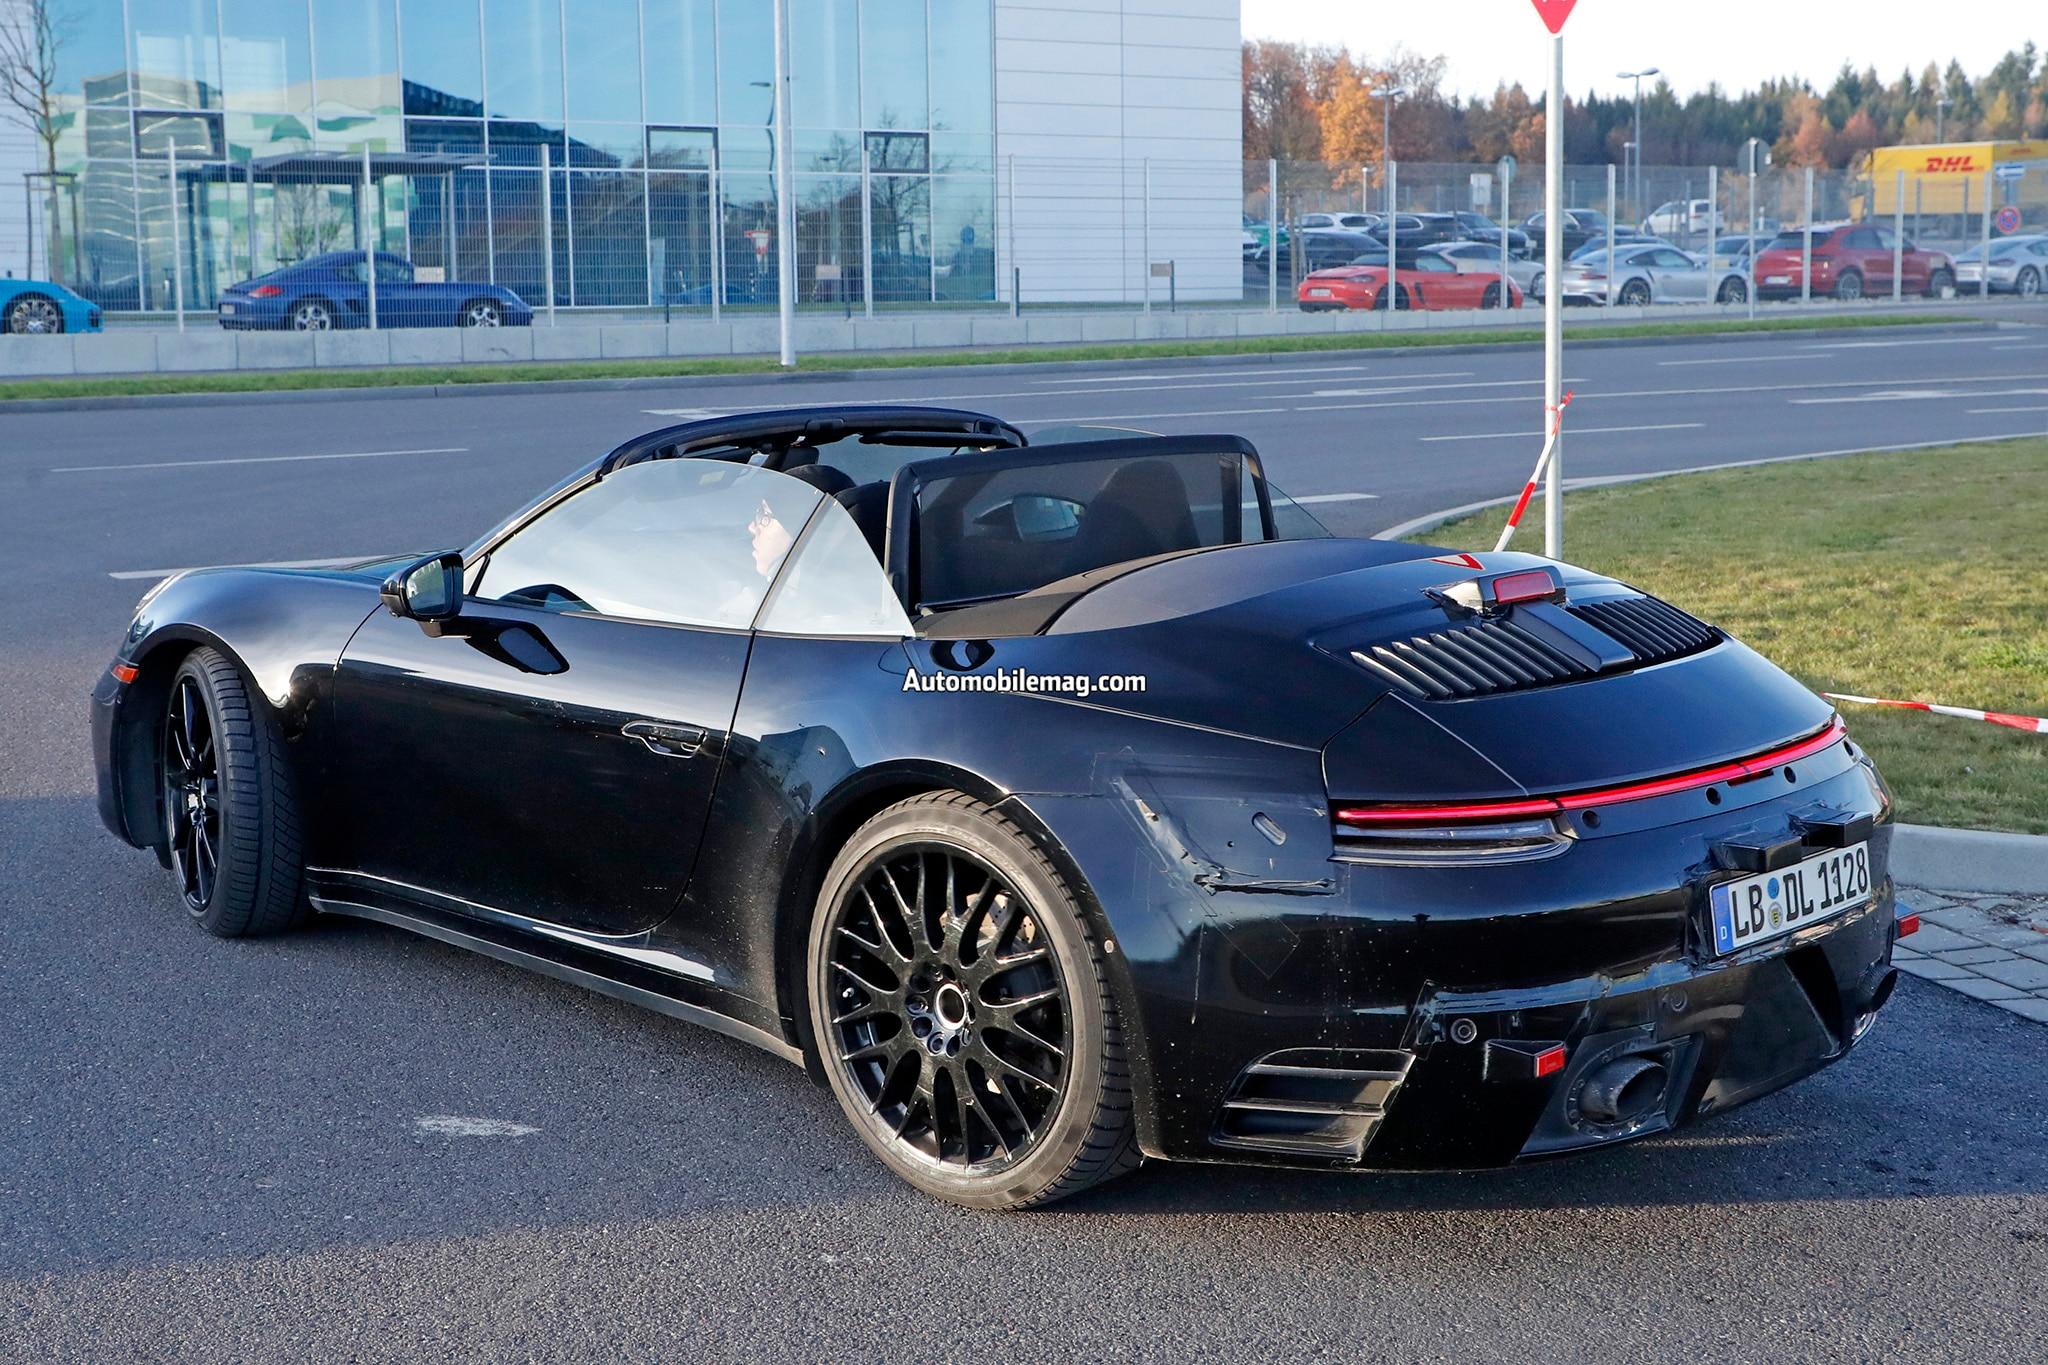 Next Gen Porsche 911 Cabriolet Spied With Bulbous Rear Automobile